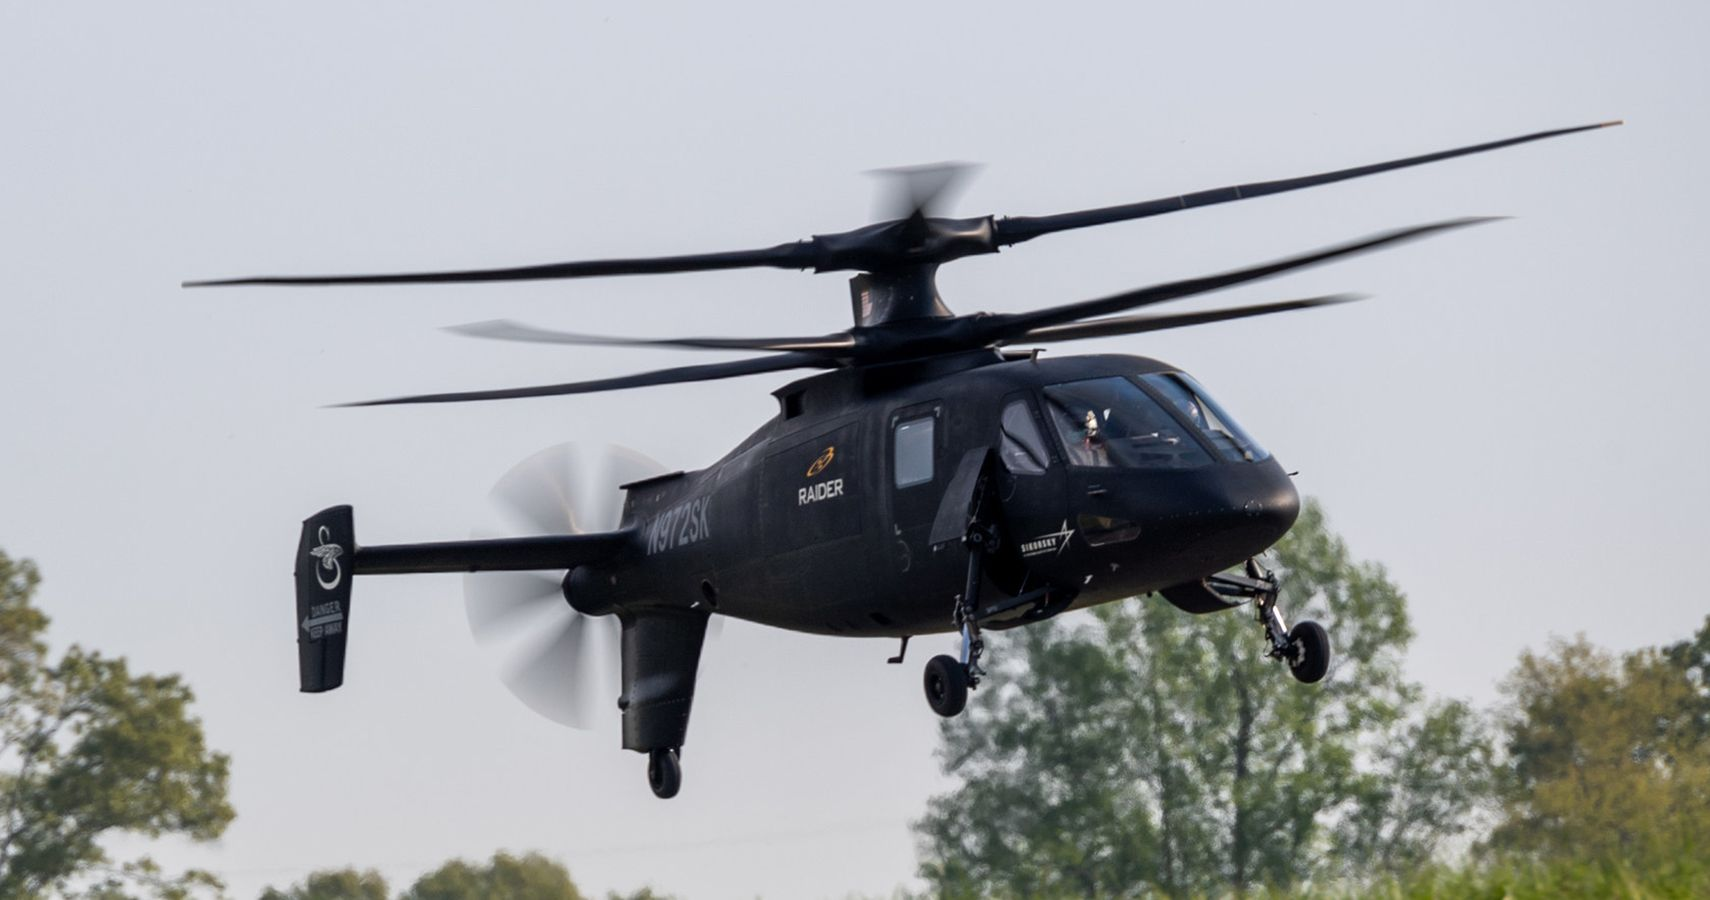 Watch: Sikorsky S-97 Raider Looks Super Fast And Agile During Test Flight